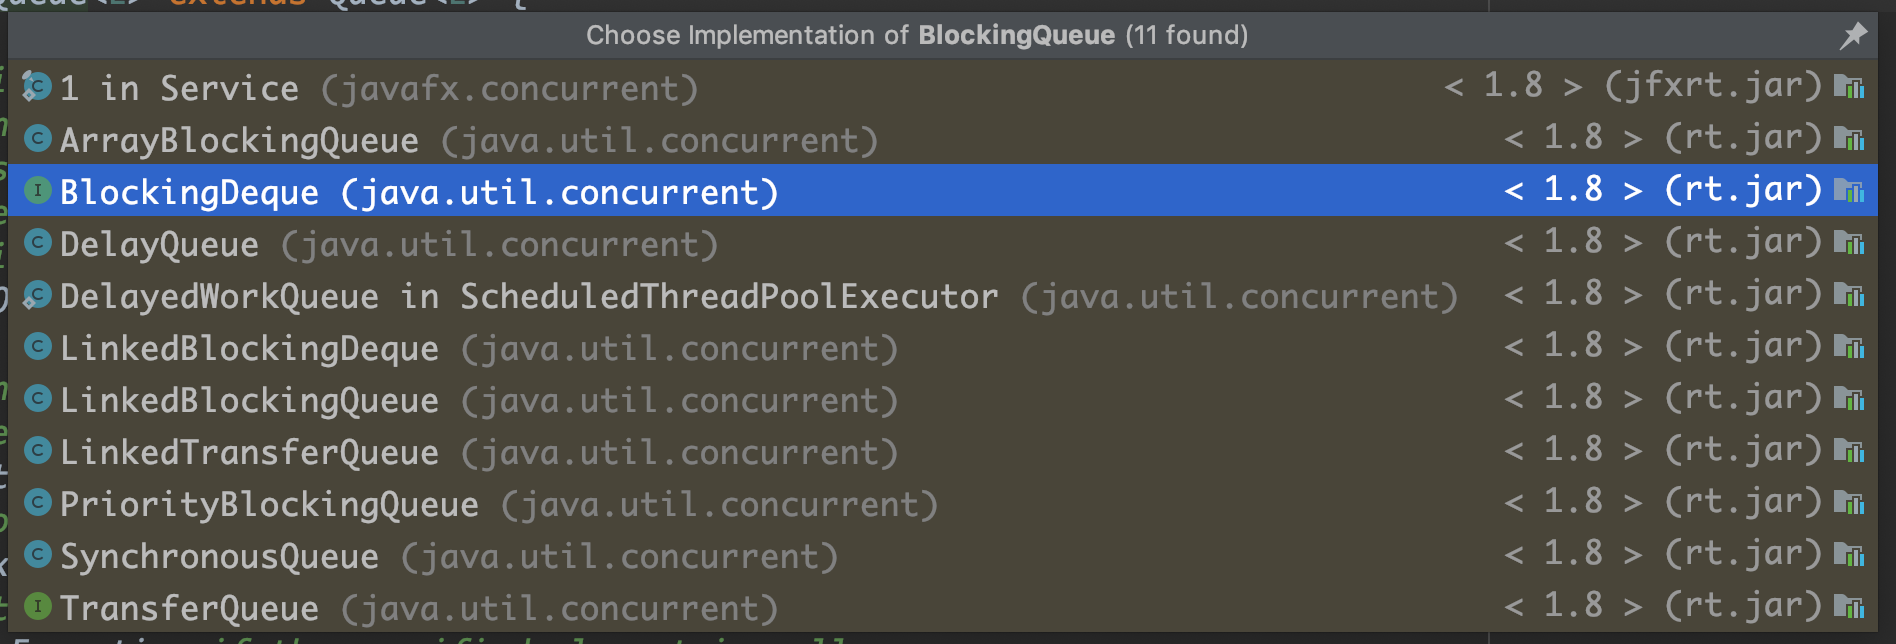 BlockingQueue Implementations